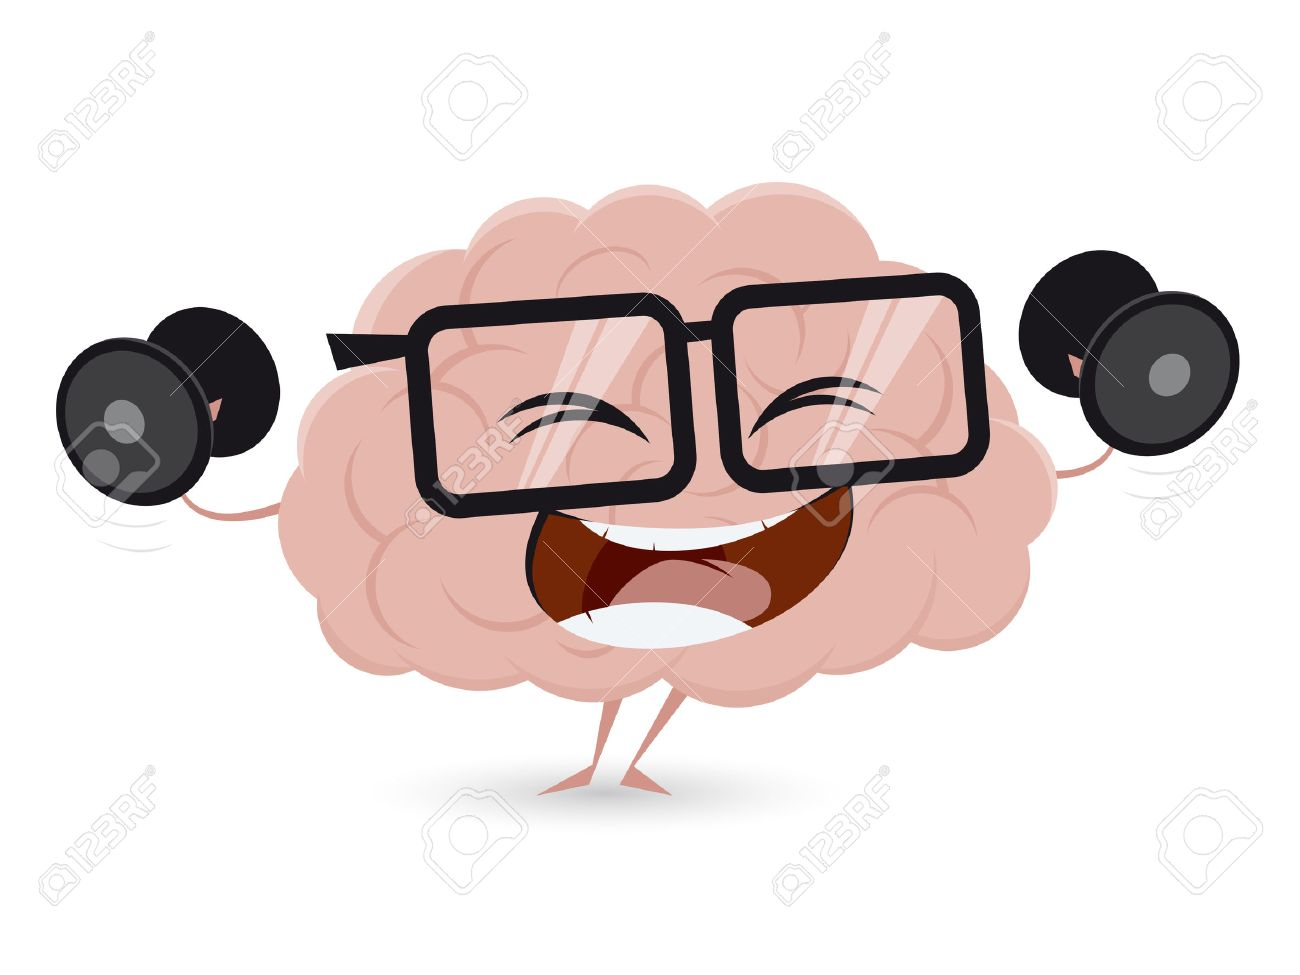 funny brain workout with dumbbells clipart.